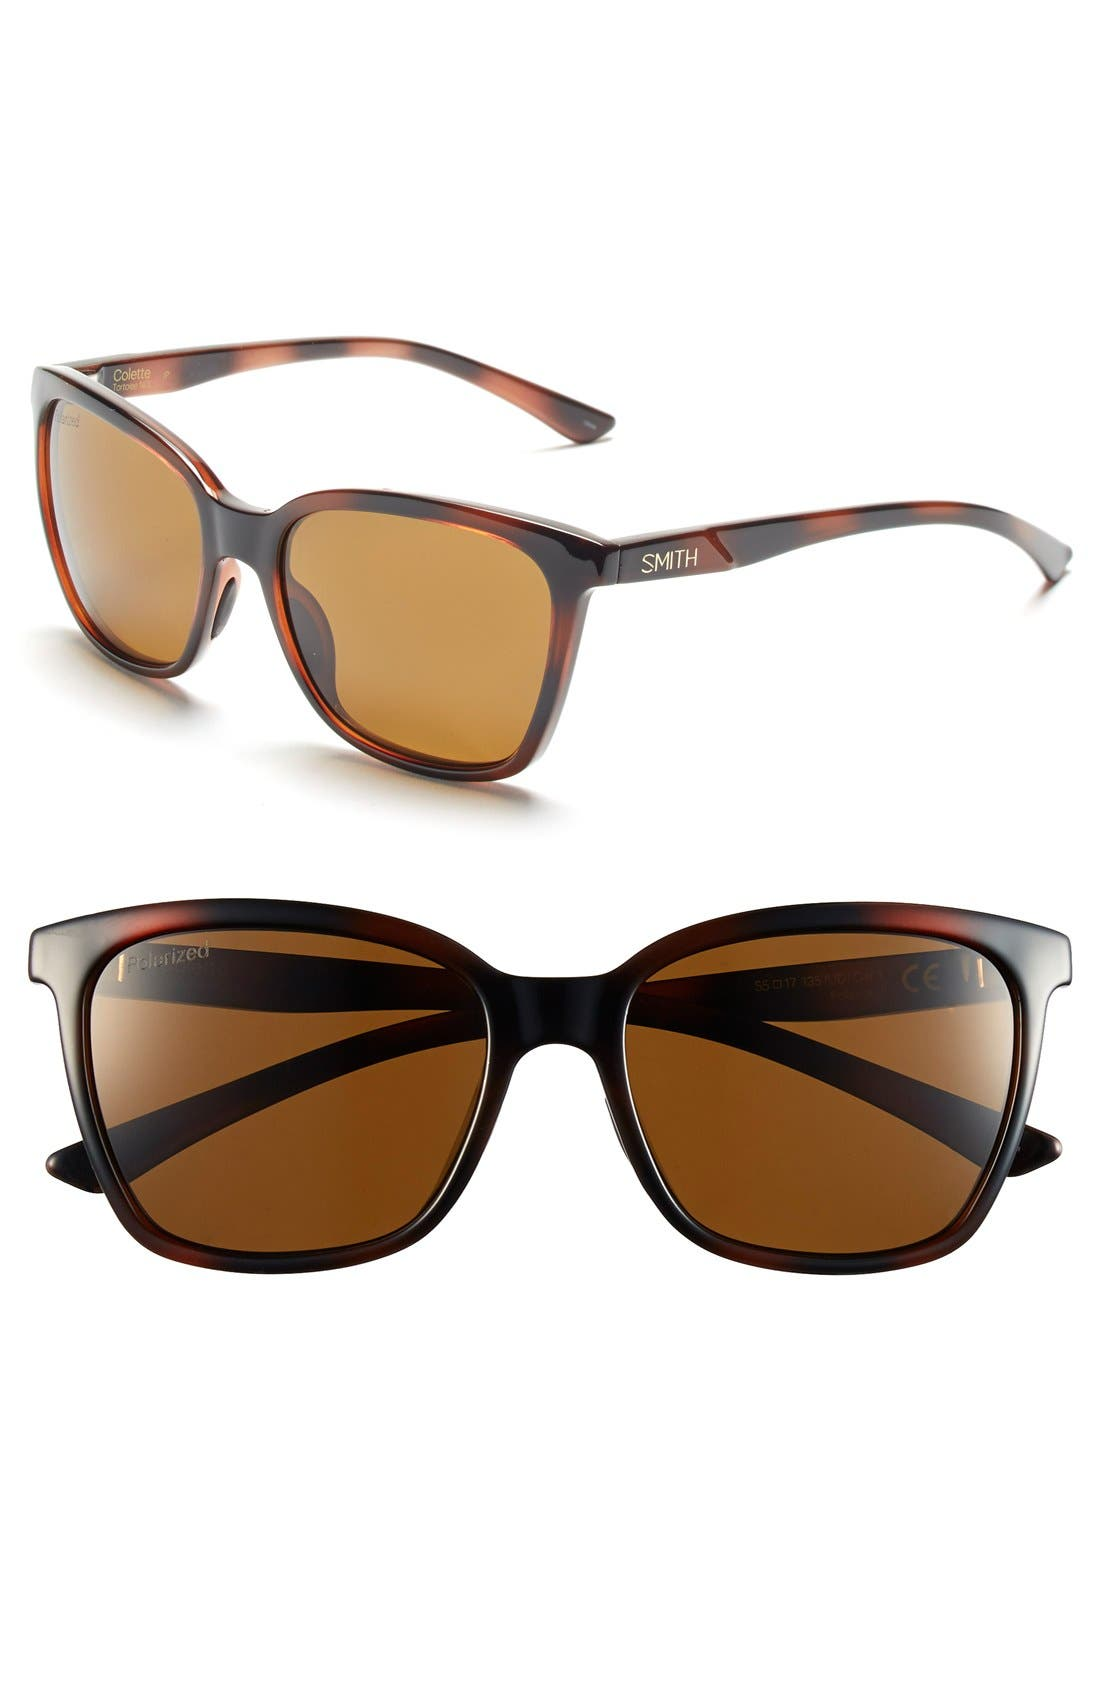 'Colette' 55mm Polarized Sunglasses,                         Main,                         color, Tortoise/ Polar Brown